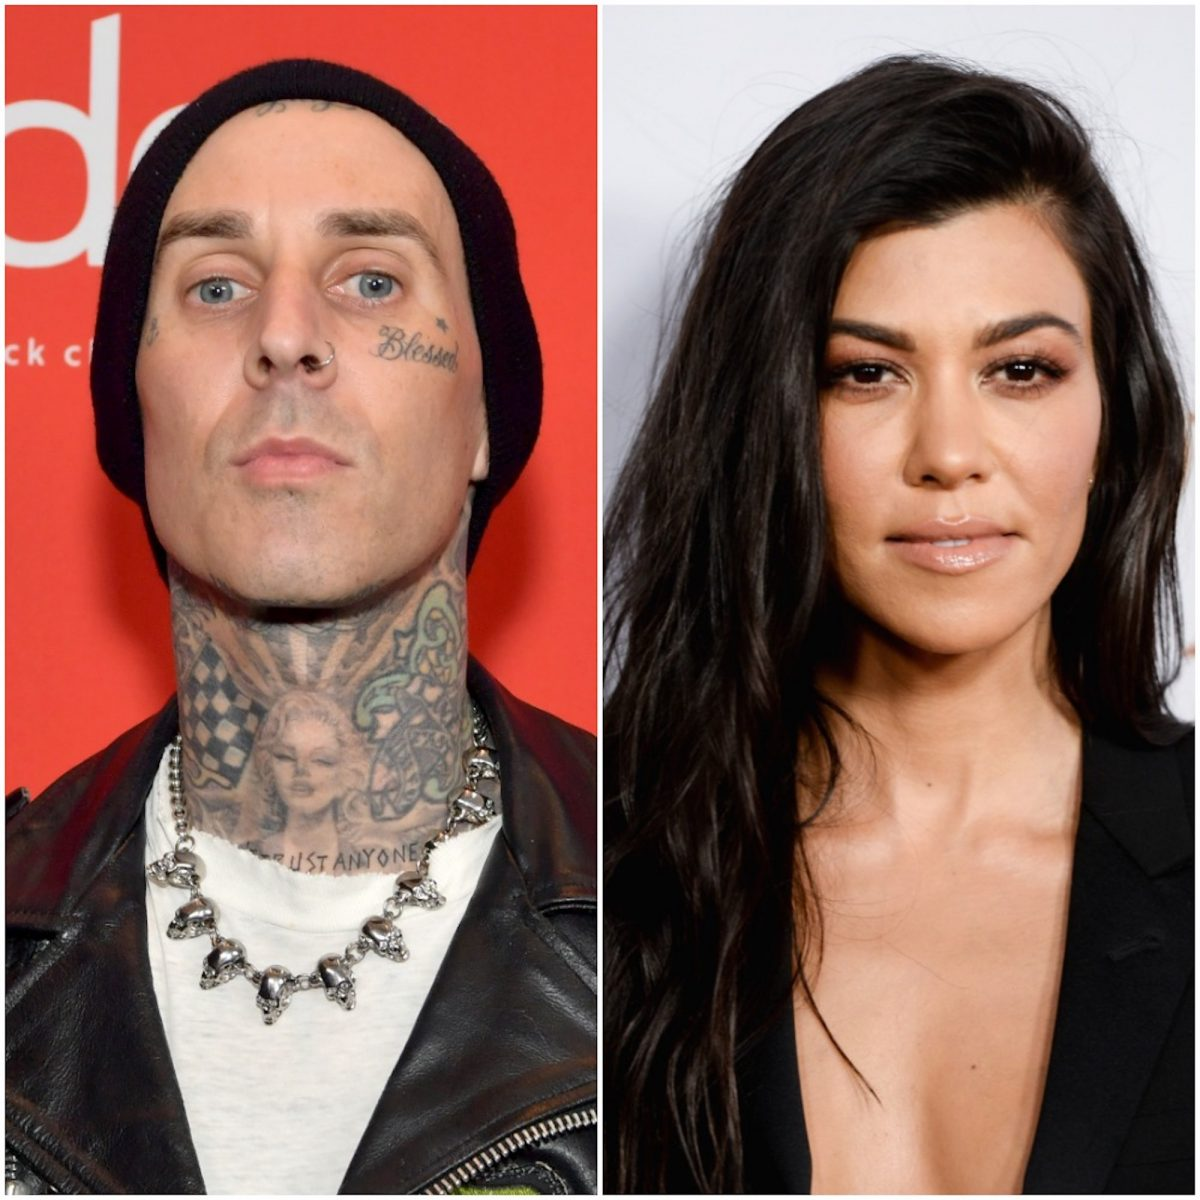 kuwtk-travis-barker-completely-in-love-with-kourtney-kardashian-heres-how-it-went-from-platonic-to-romantic